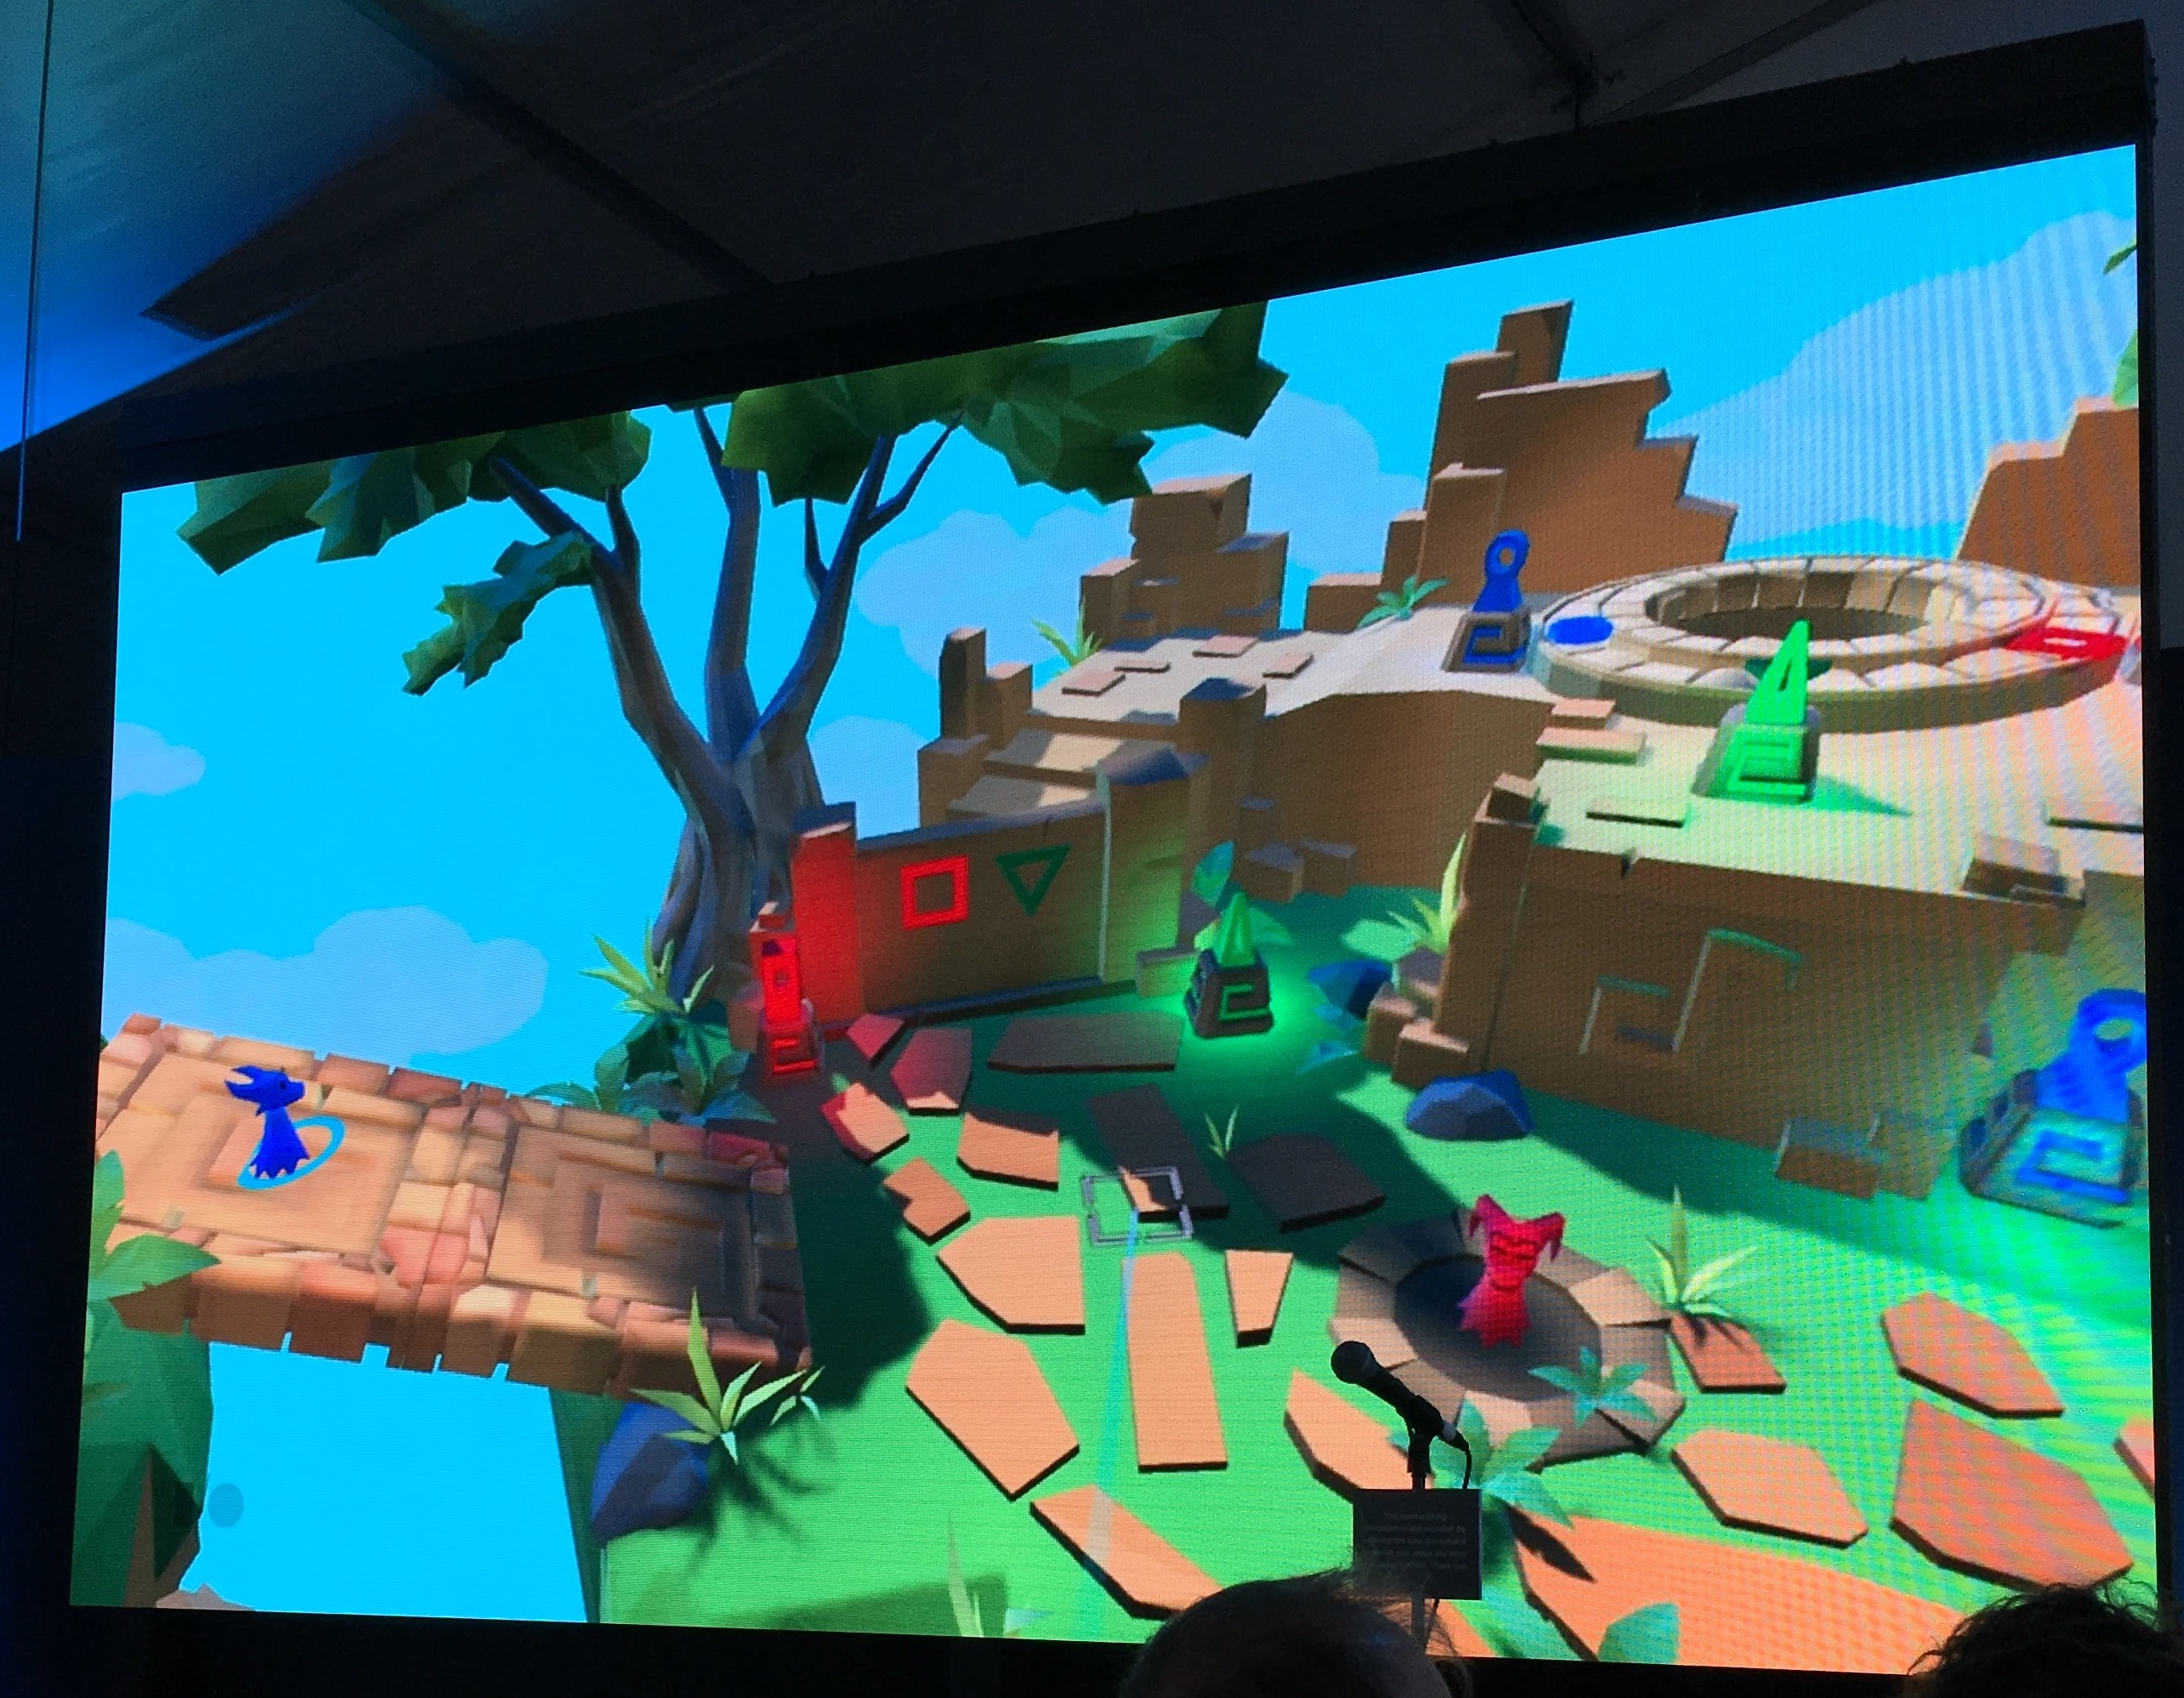 A platformer for Google Daydream developed by Schell Games.